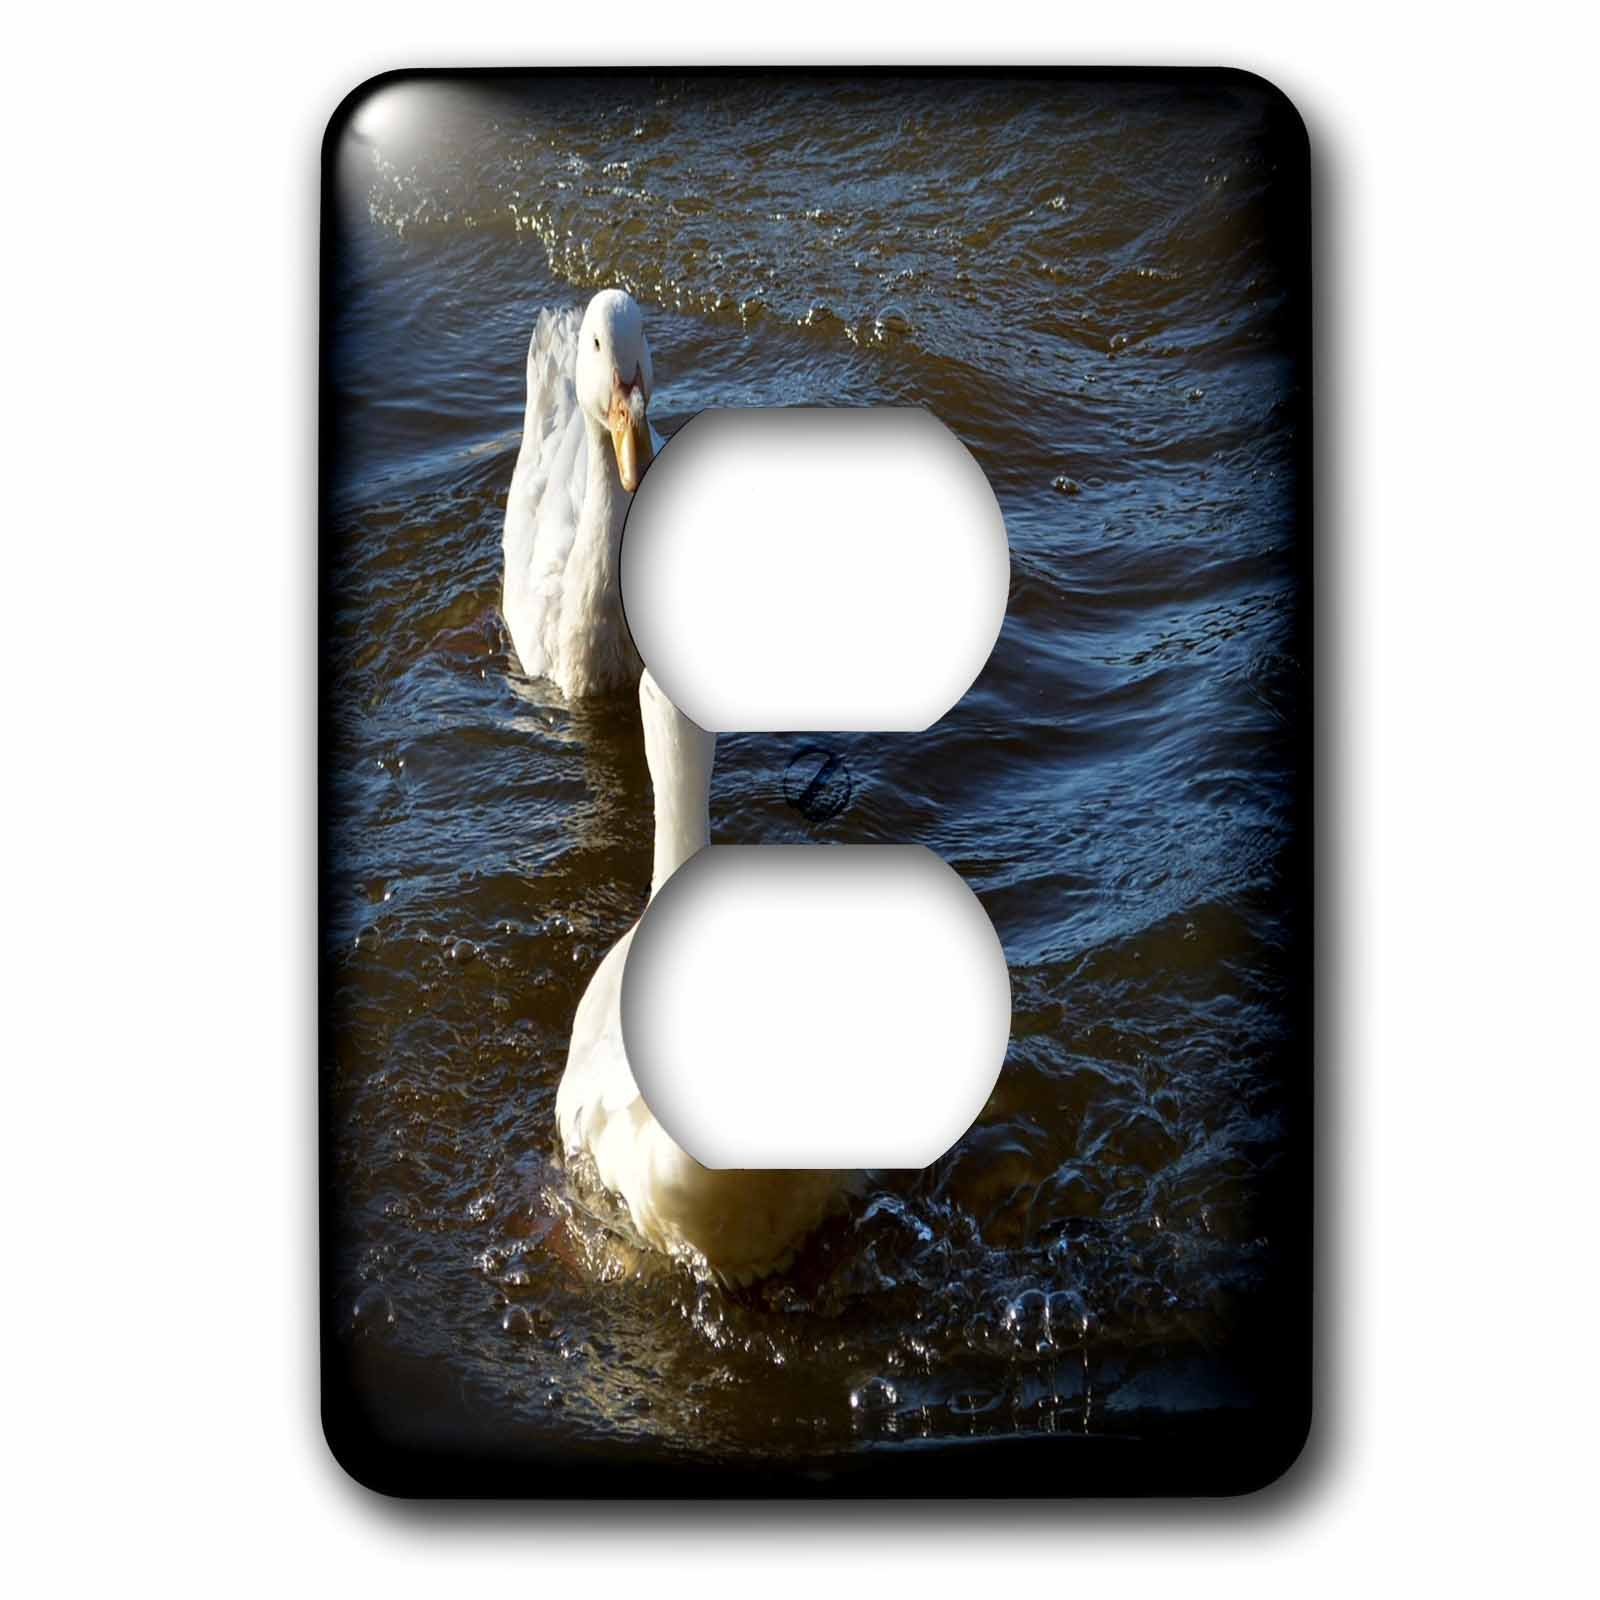 3dRose WhiteOaks Photography and Artwork - Ducks - Mirror Mirror is a photo of two ducks looking at each other - Light Switch Covers - 2 plug outlet cover (lsp_265328_6)